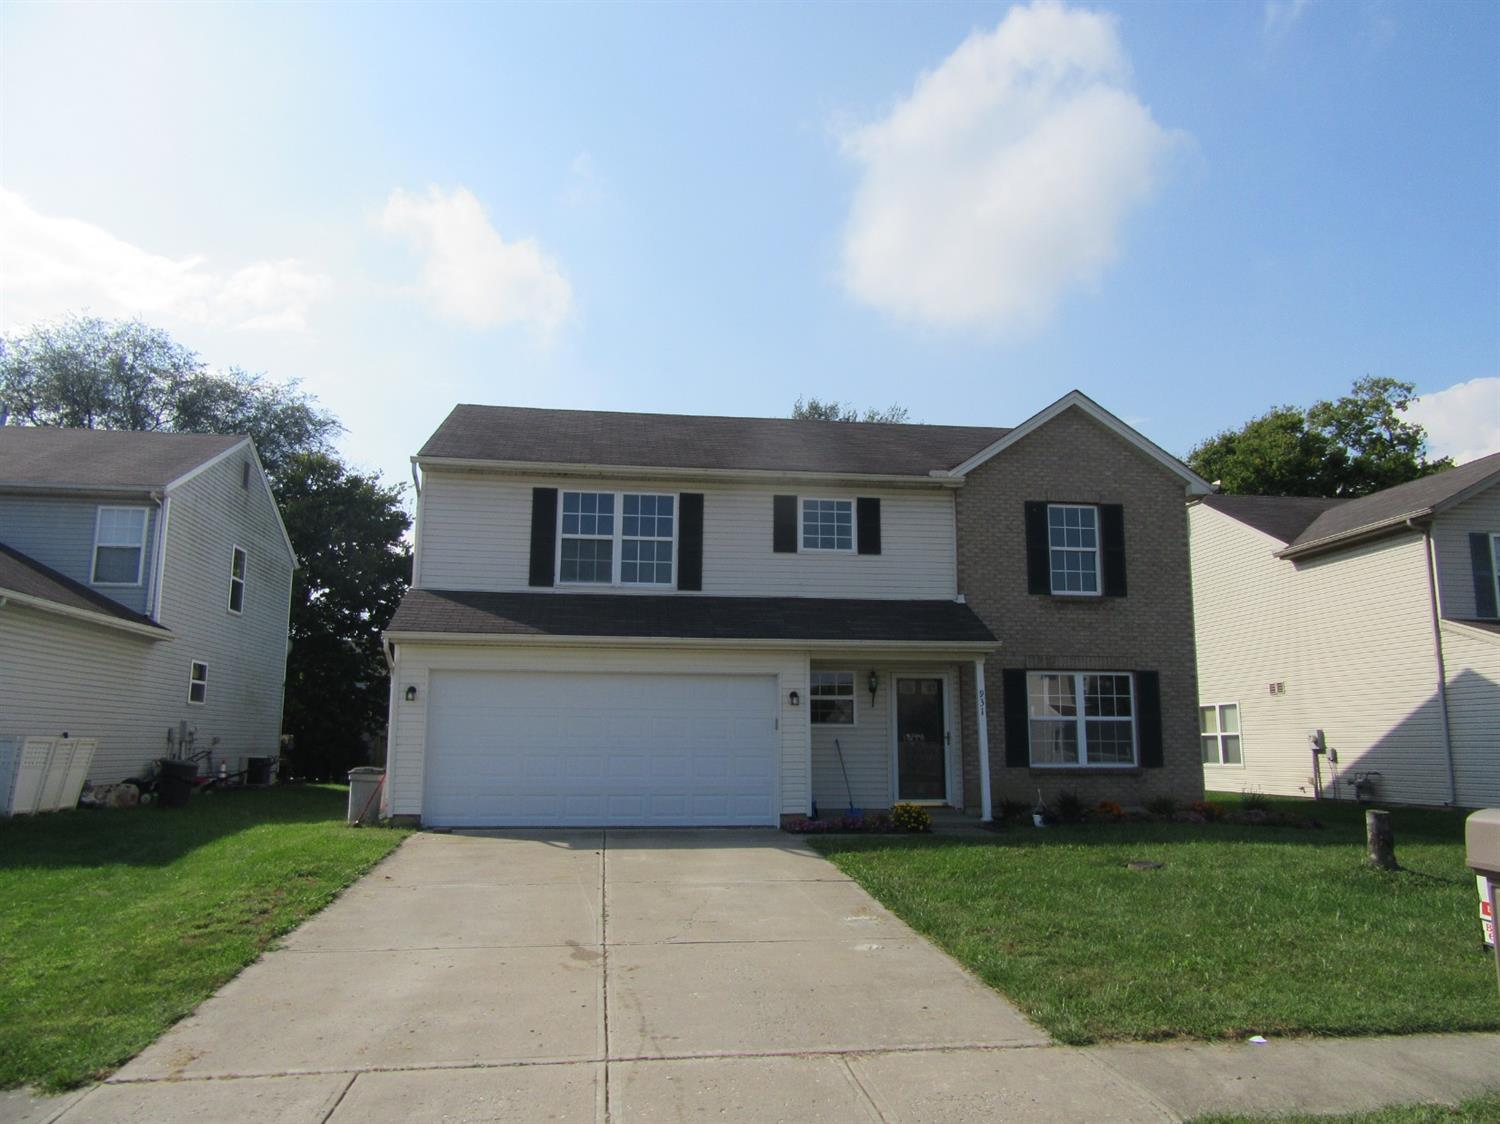 Property for sale at 931 Marcia Drive, Trenton,  OH 45067